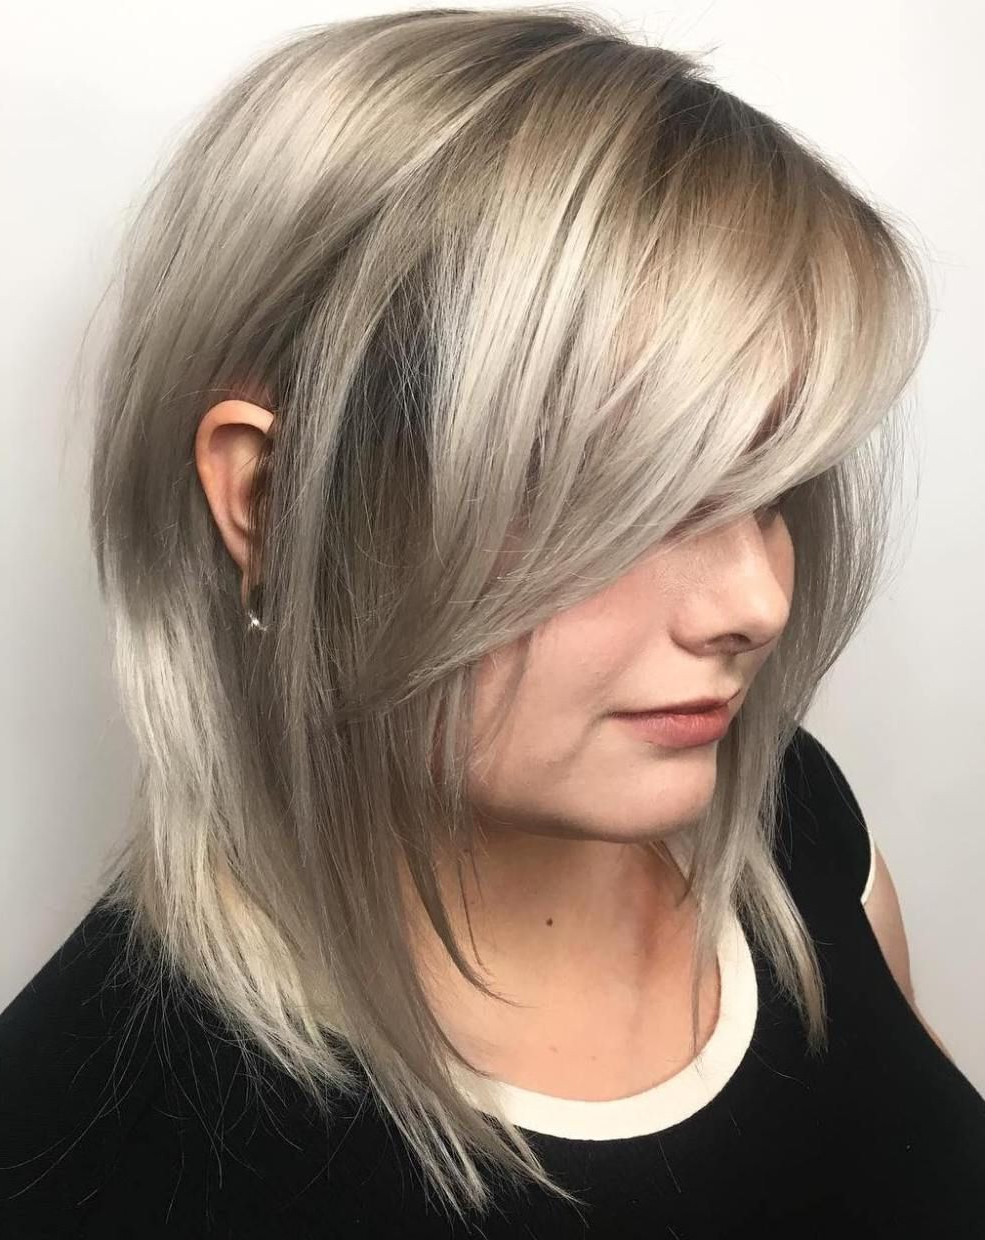 40 Side Swept Bangs To Sweep You Off Your Feet In 2018 | Hair Regarding Layered Bob Hairstyles With Swoopy Side Bangs (View 1 of 20)